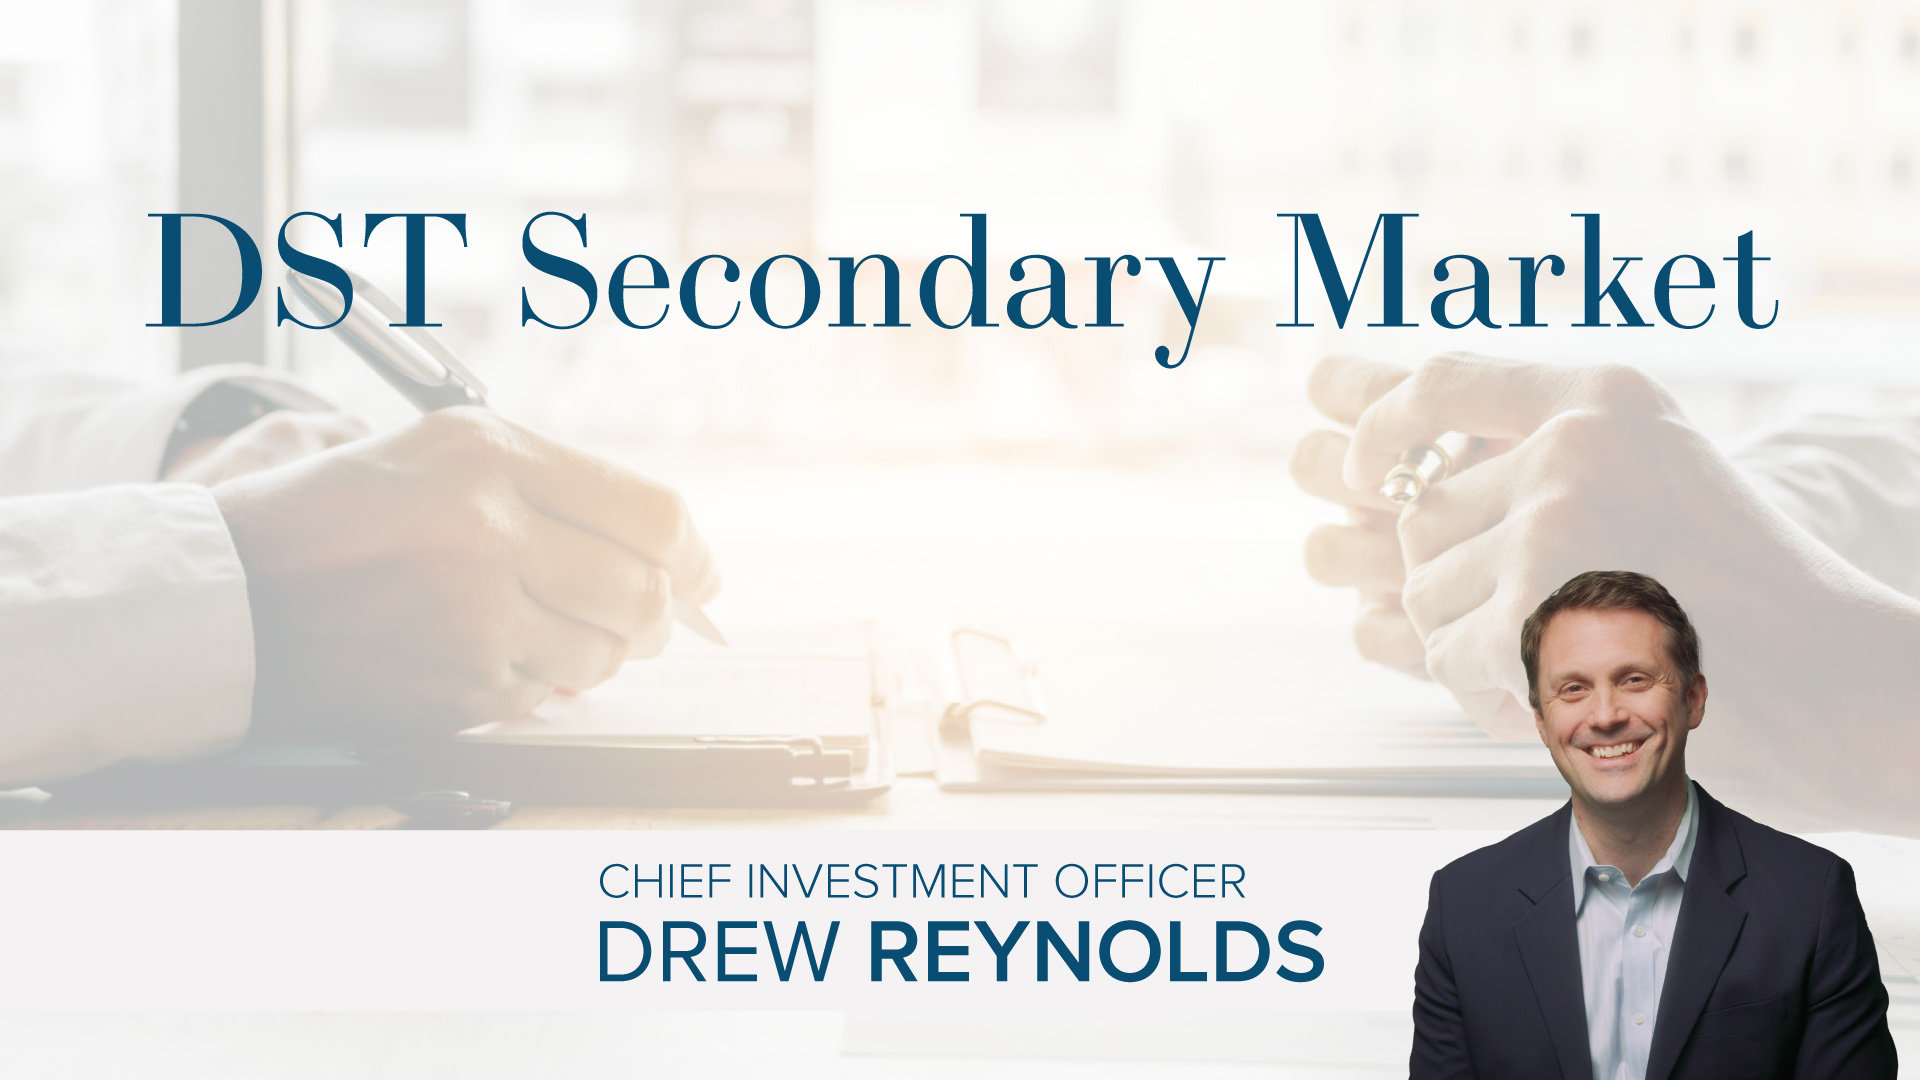 11-dst-secondary-market